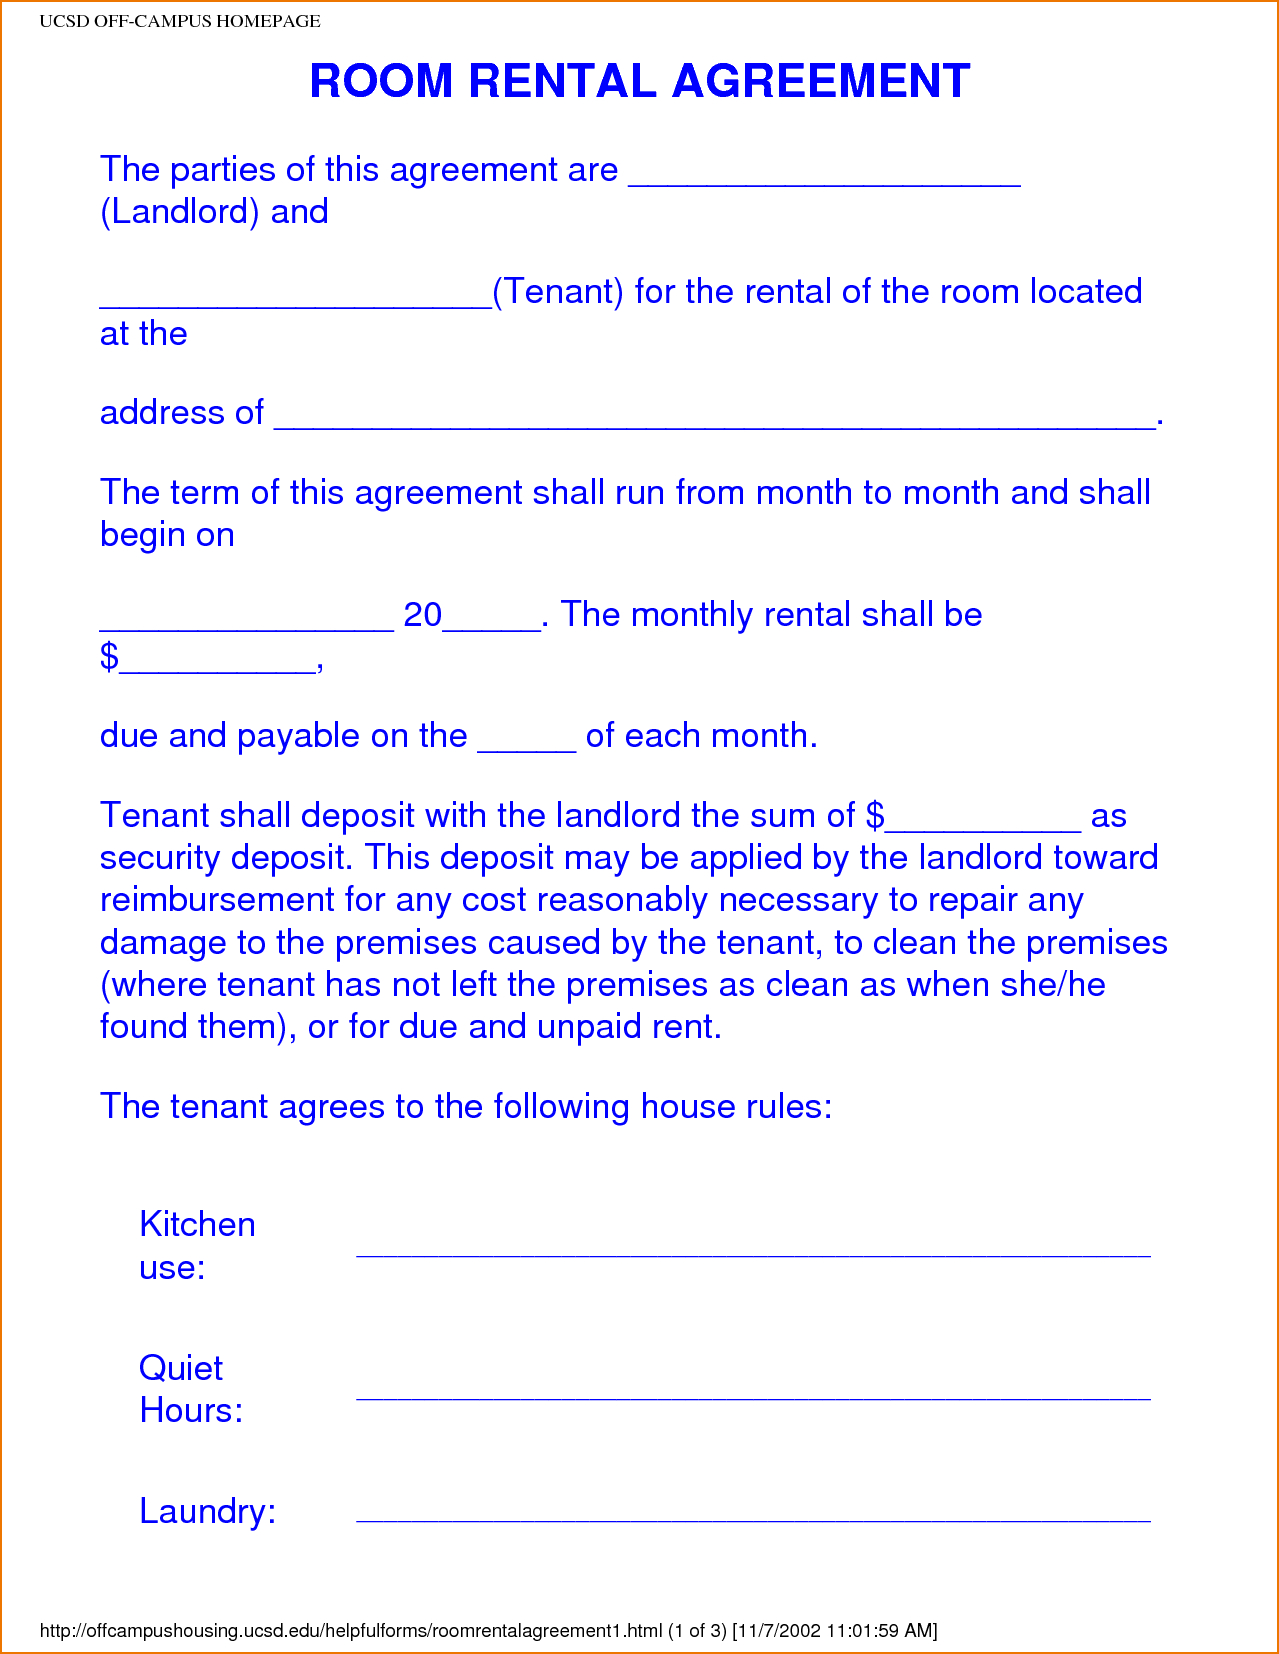 Image Result For College Roommate Agreement Template Room Rental - Free Printable Room Rental Agreement Forms